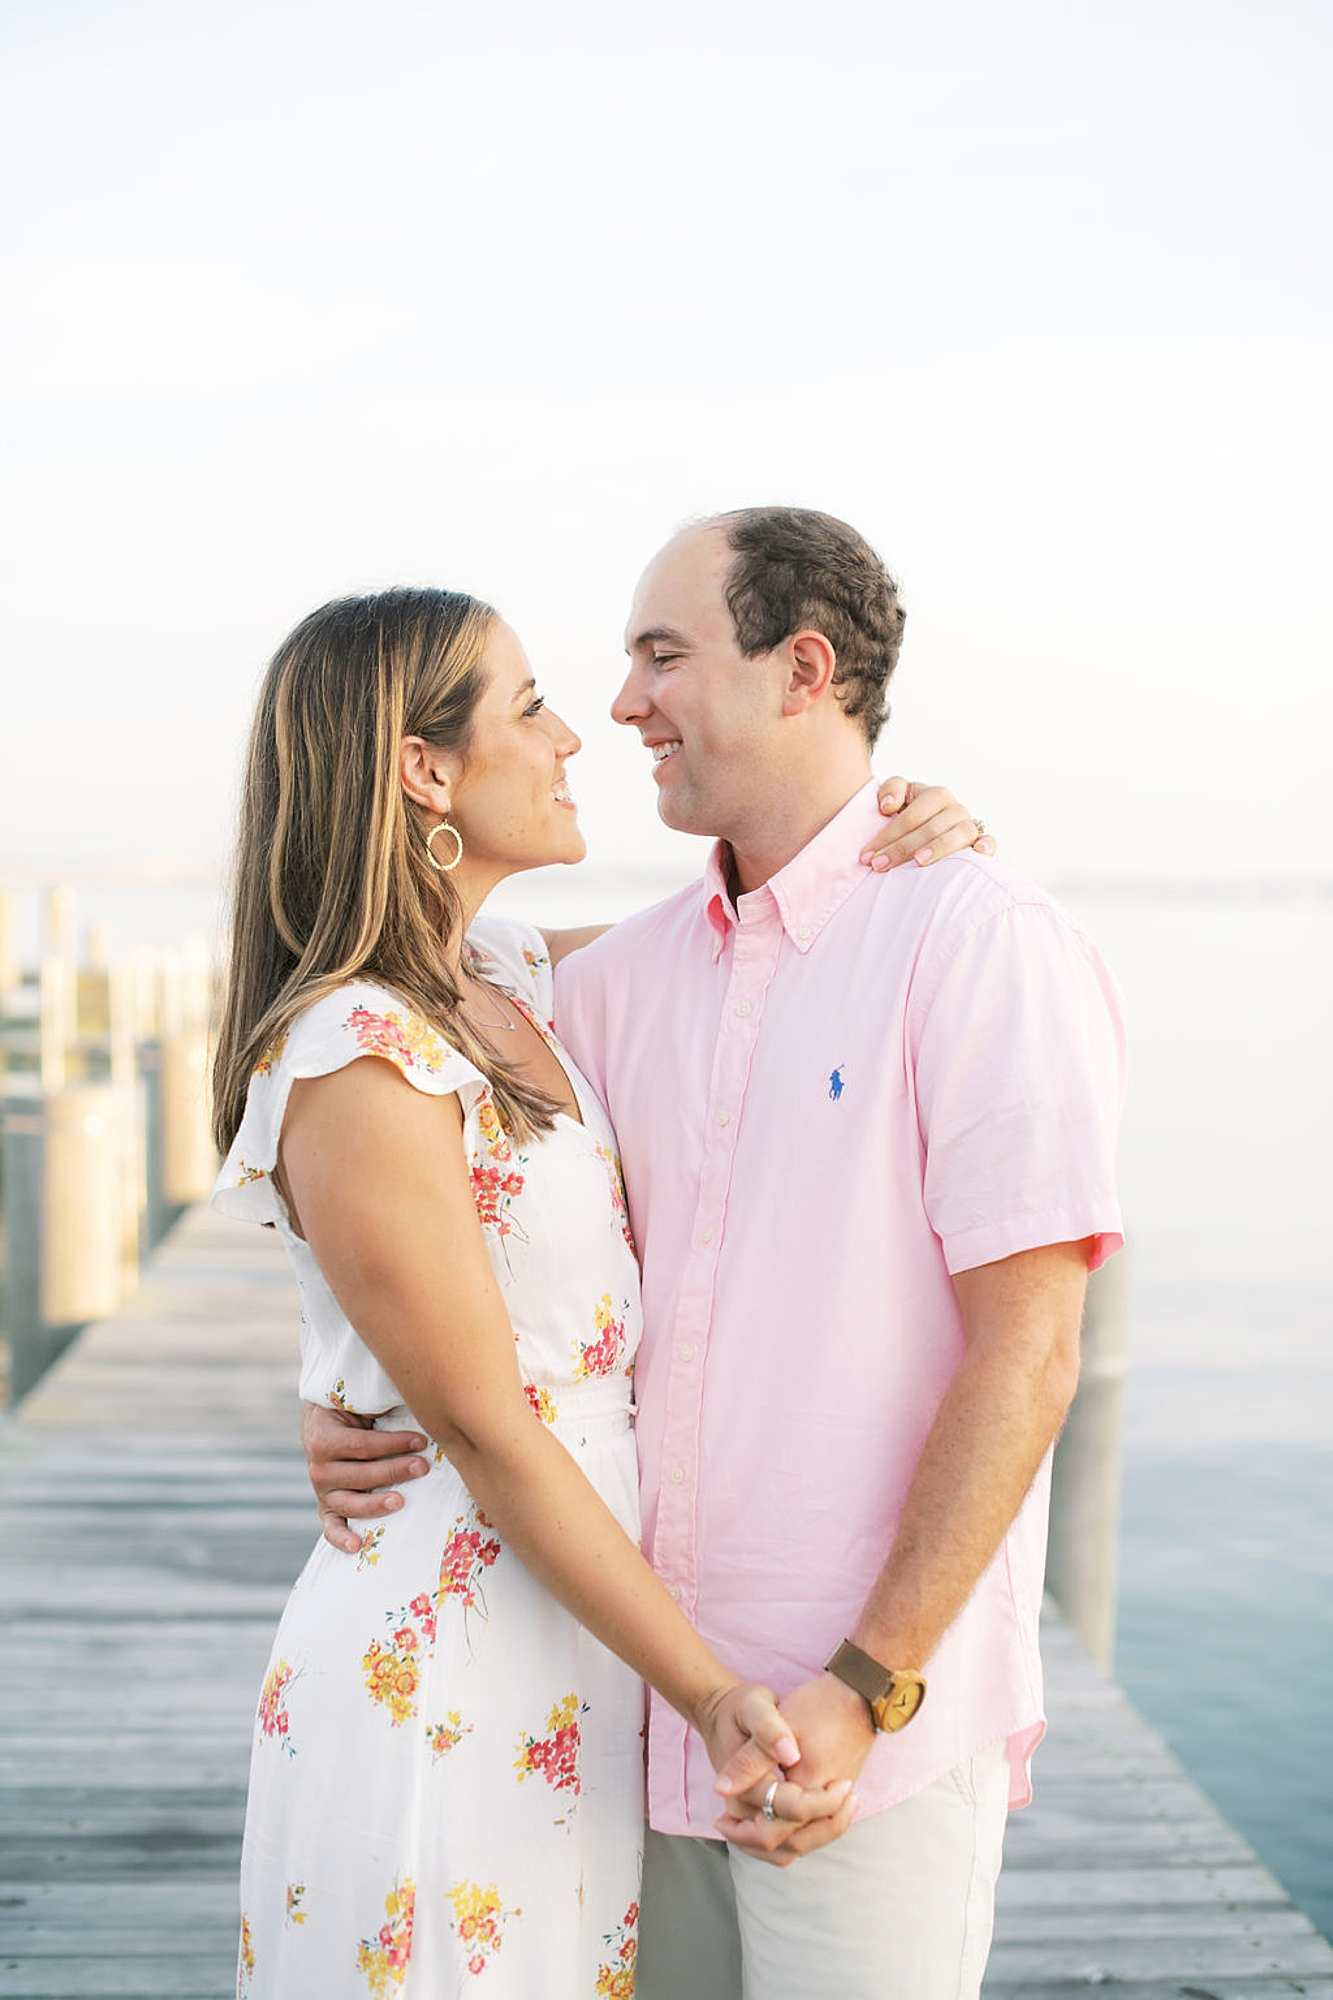 Organic and Romantic Engagement Photography in Ocean City NJ by Magdalena Studios 0024